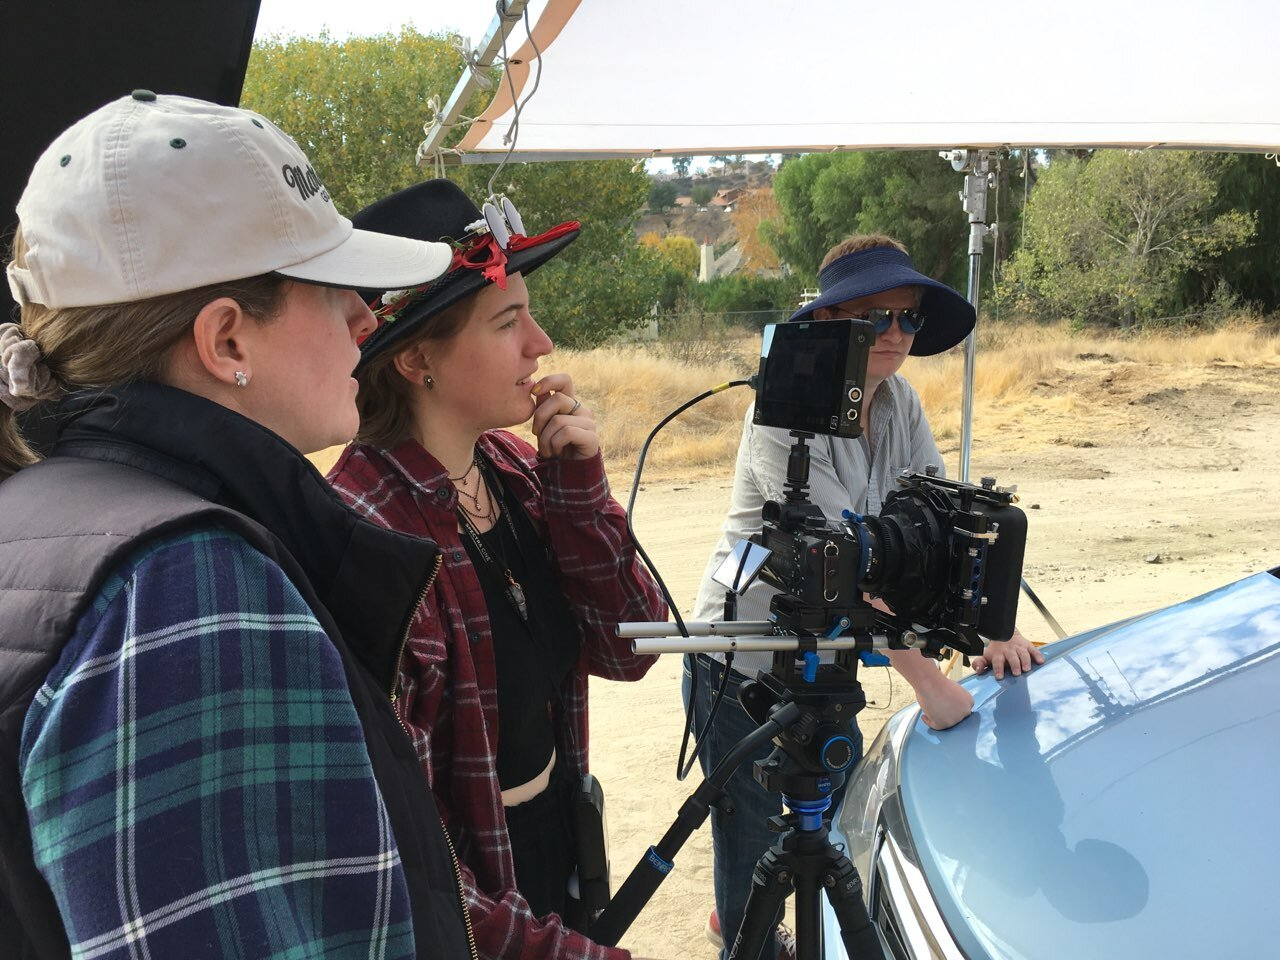 Director Kate Ketcham, Cinematographer Kyah Cook, and Producer Cameron A. Mitchell on set.